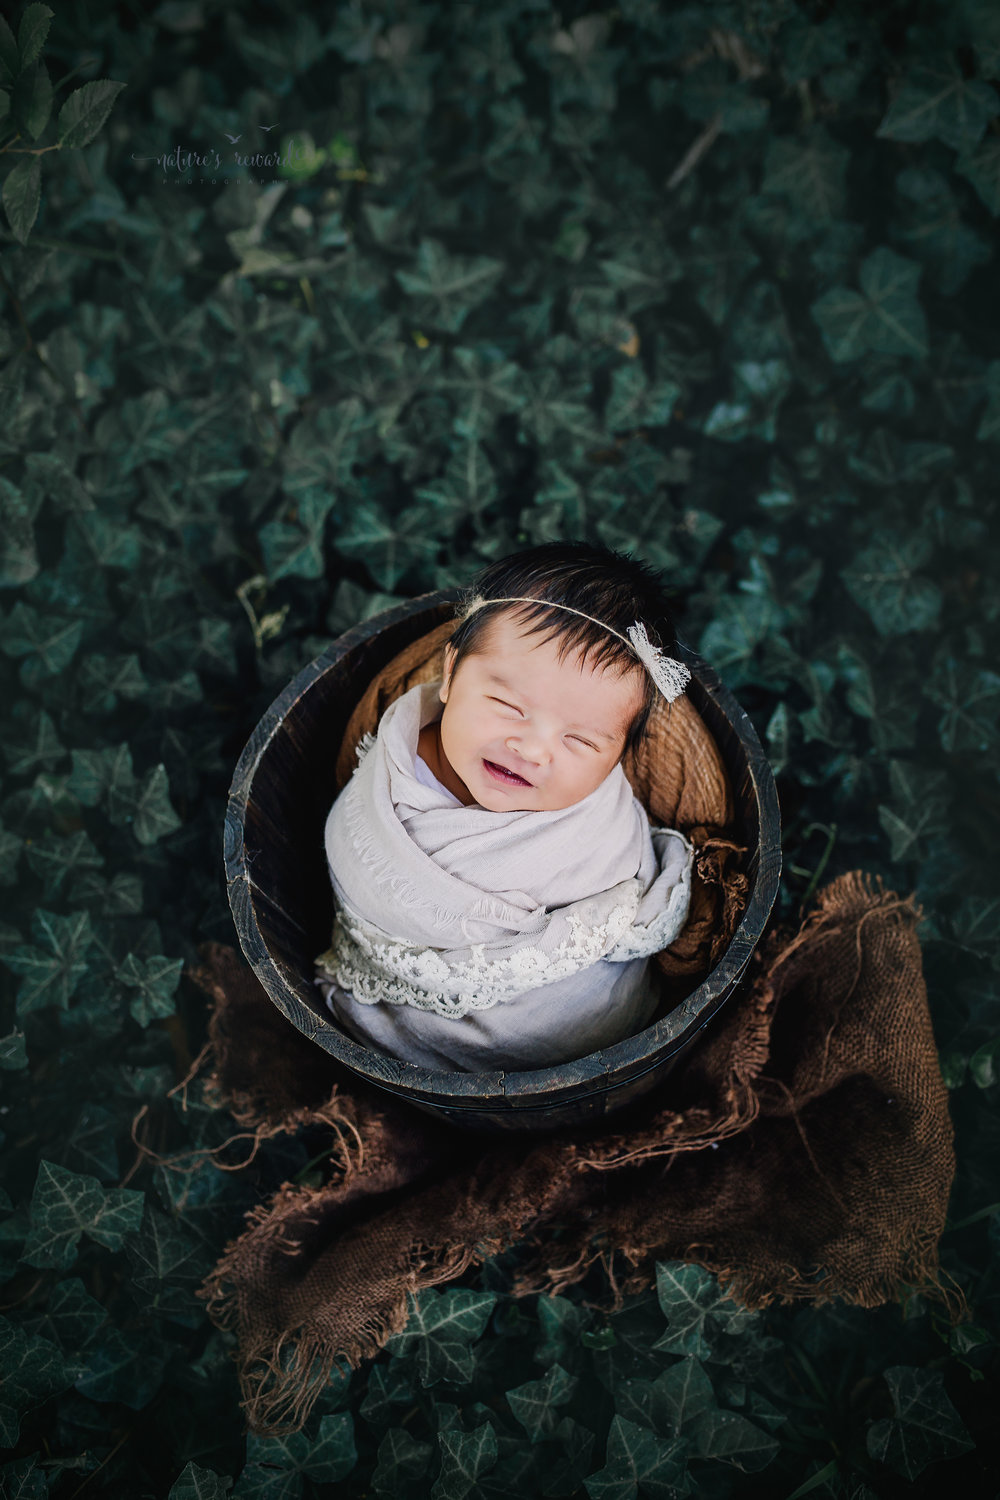 This sweet newborn baby girl in subtle neutral lace adorned wrap in a brown bucket in a bed of ivy. A portrait by Nature's Reward Photography